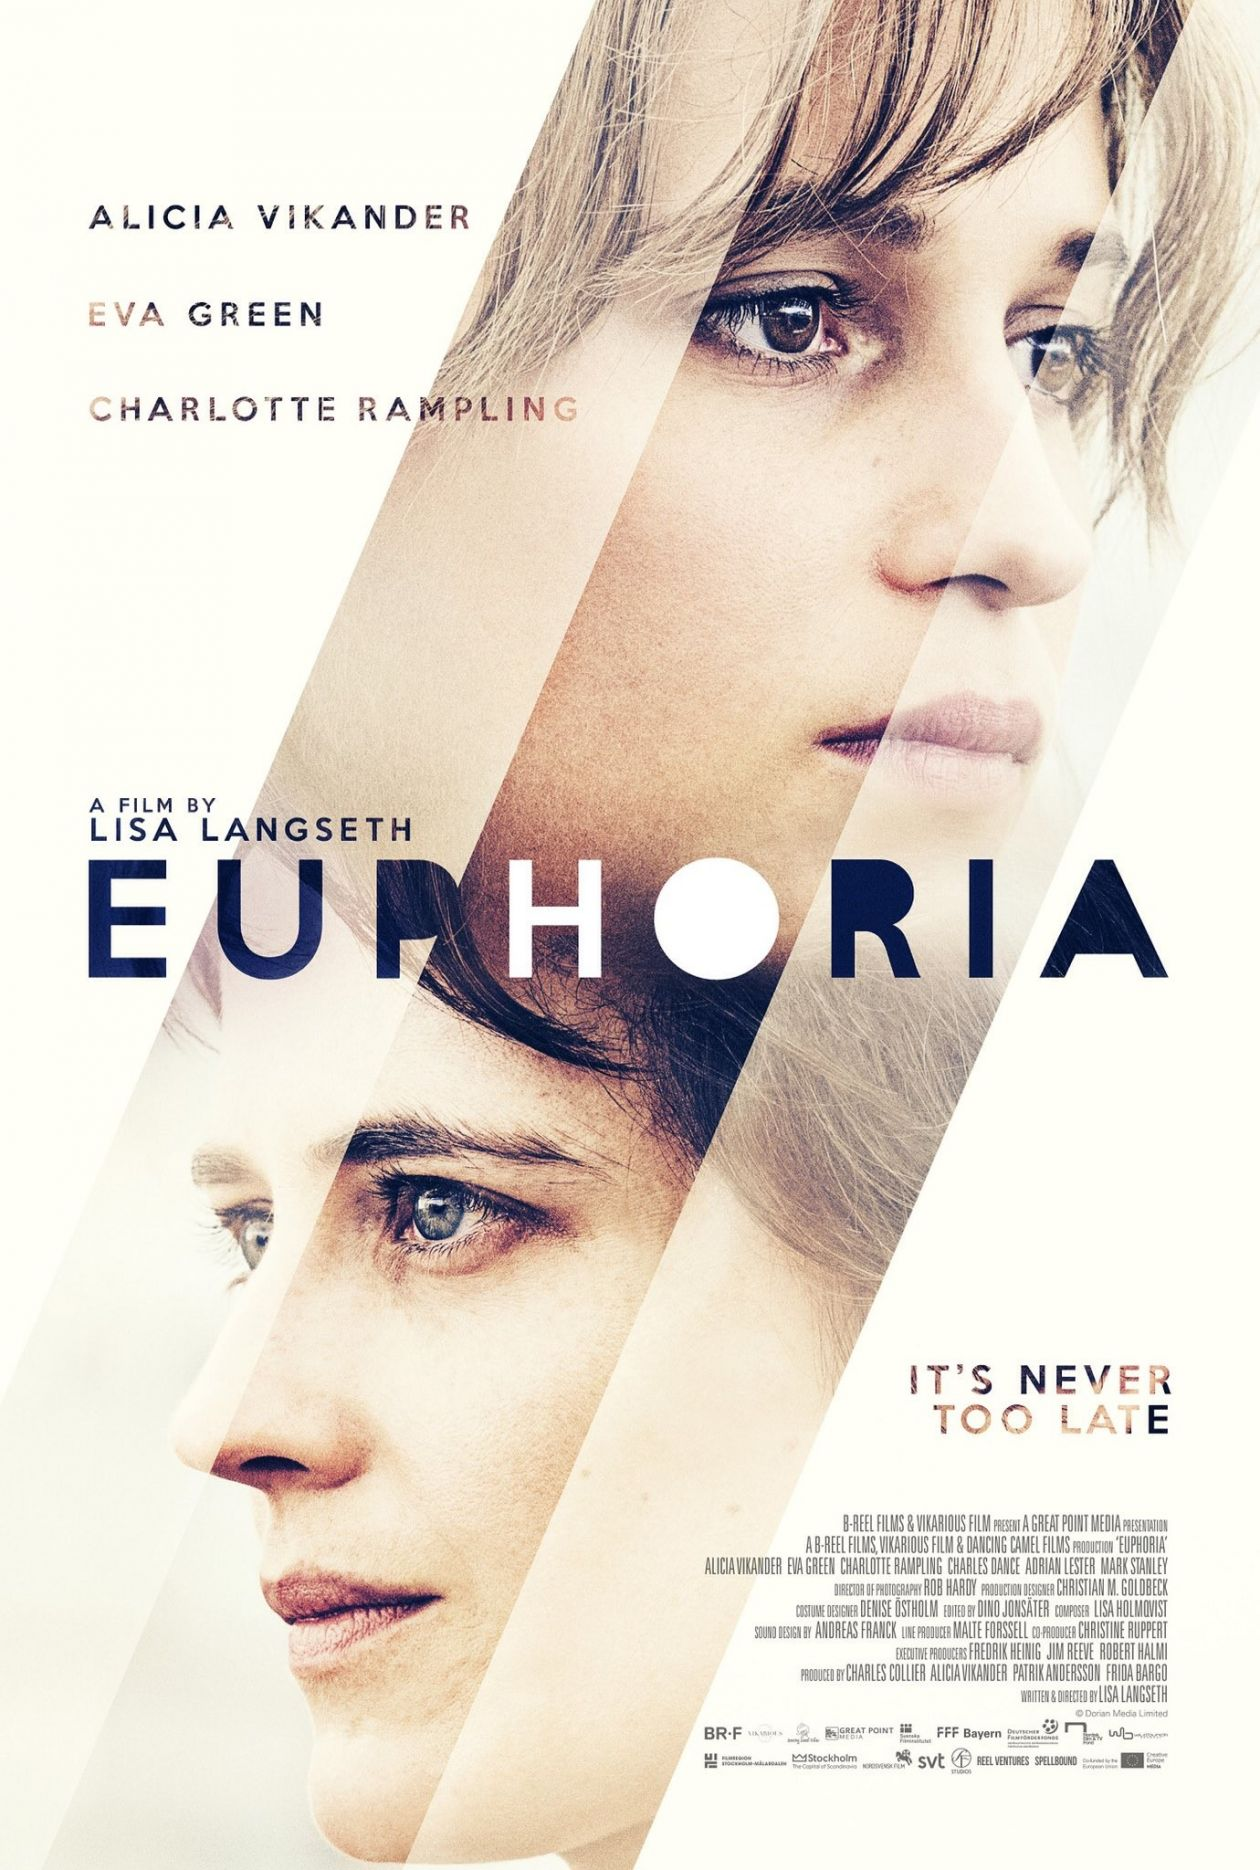 Alicia Vikander / Eva Green | Euphoria / Lisa Langseth 2017 Movie Poster Affiche film